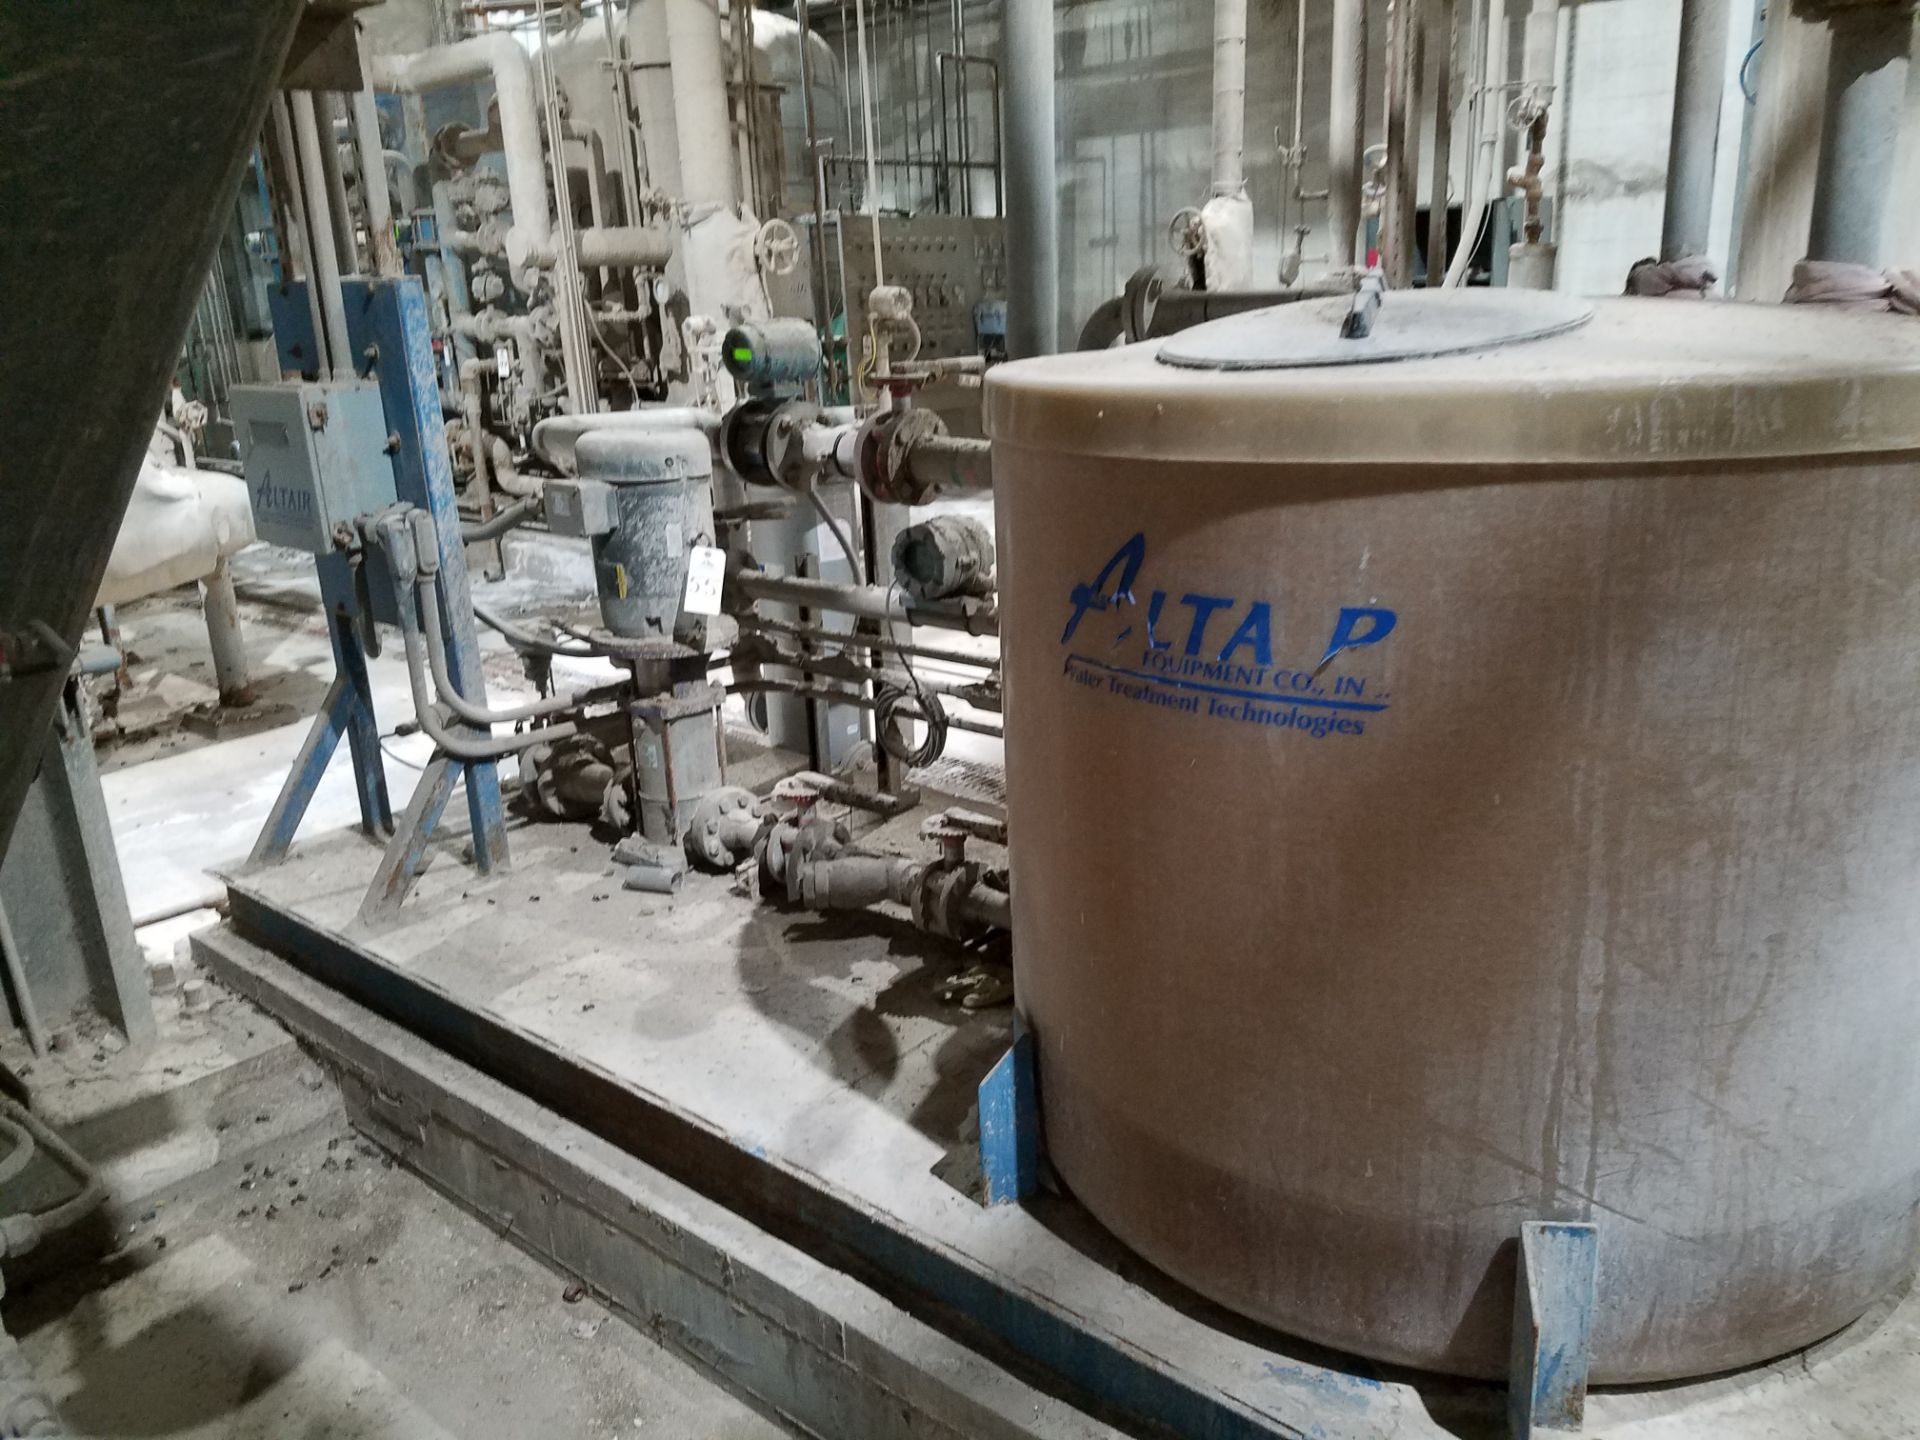 Lot 55 - Altair Equipment Co Water Treatment System | Rig Fee: $1200